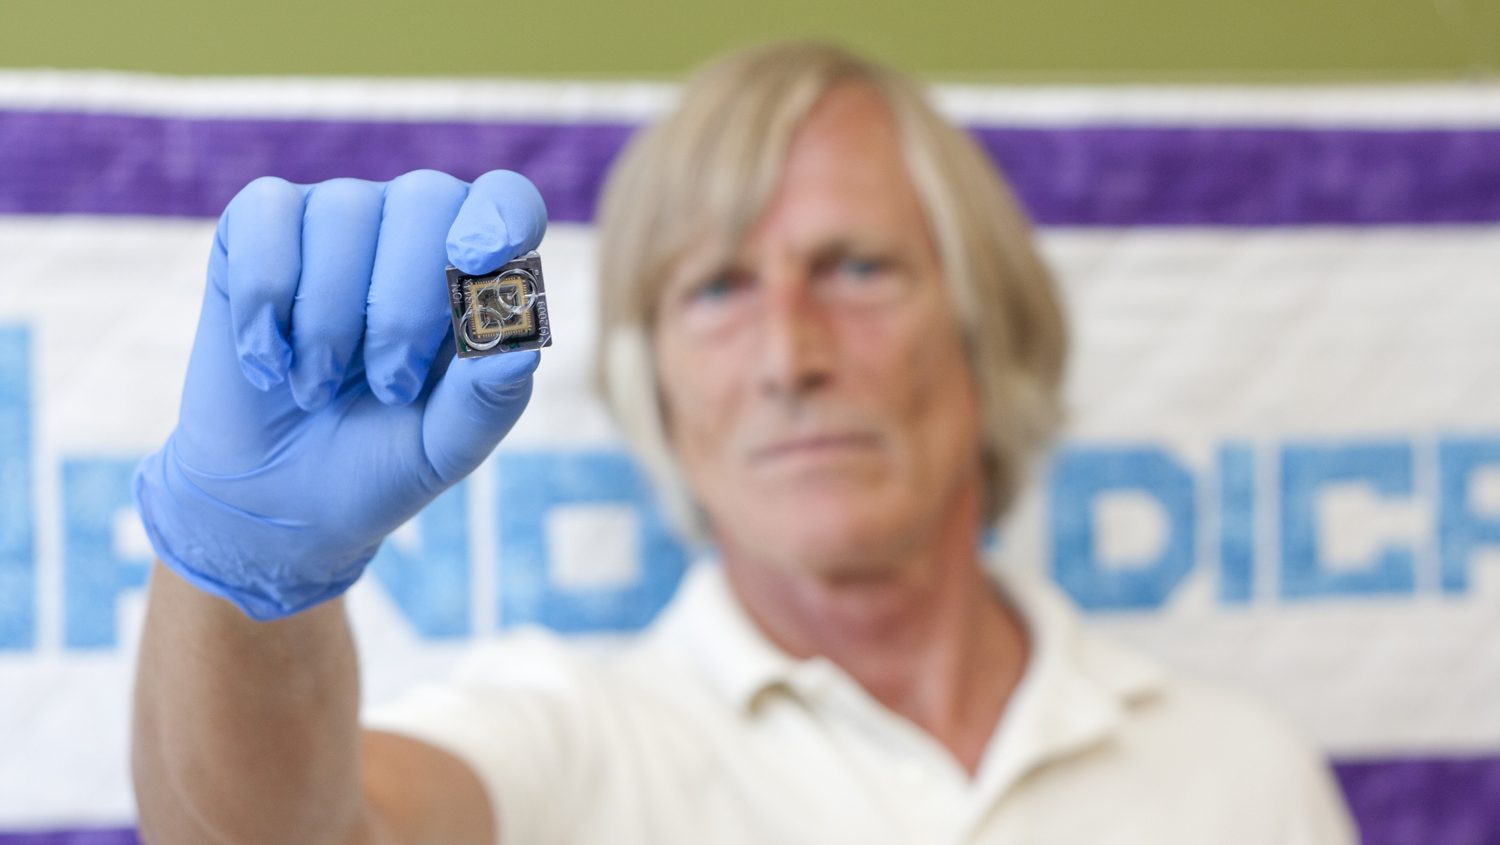 Nanomedical startup has found its home in Winston-Salem's Startup Ecosystem